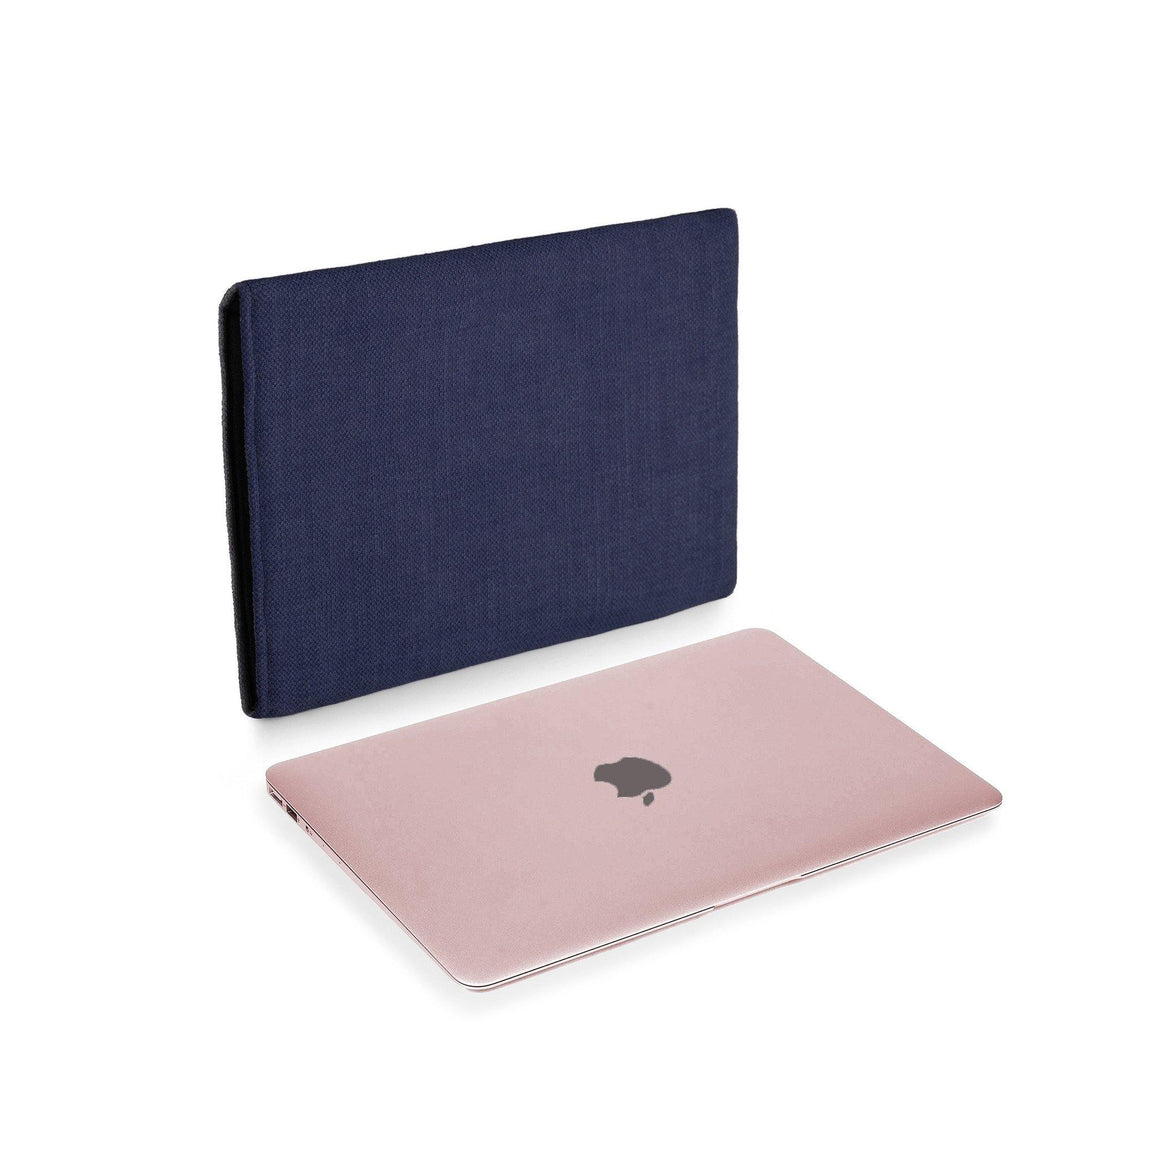 MacBook 12 Rose Gold Cover Navy - Wrappers UK